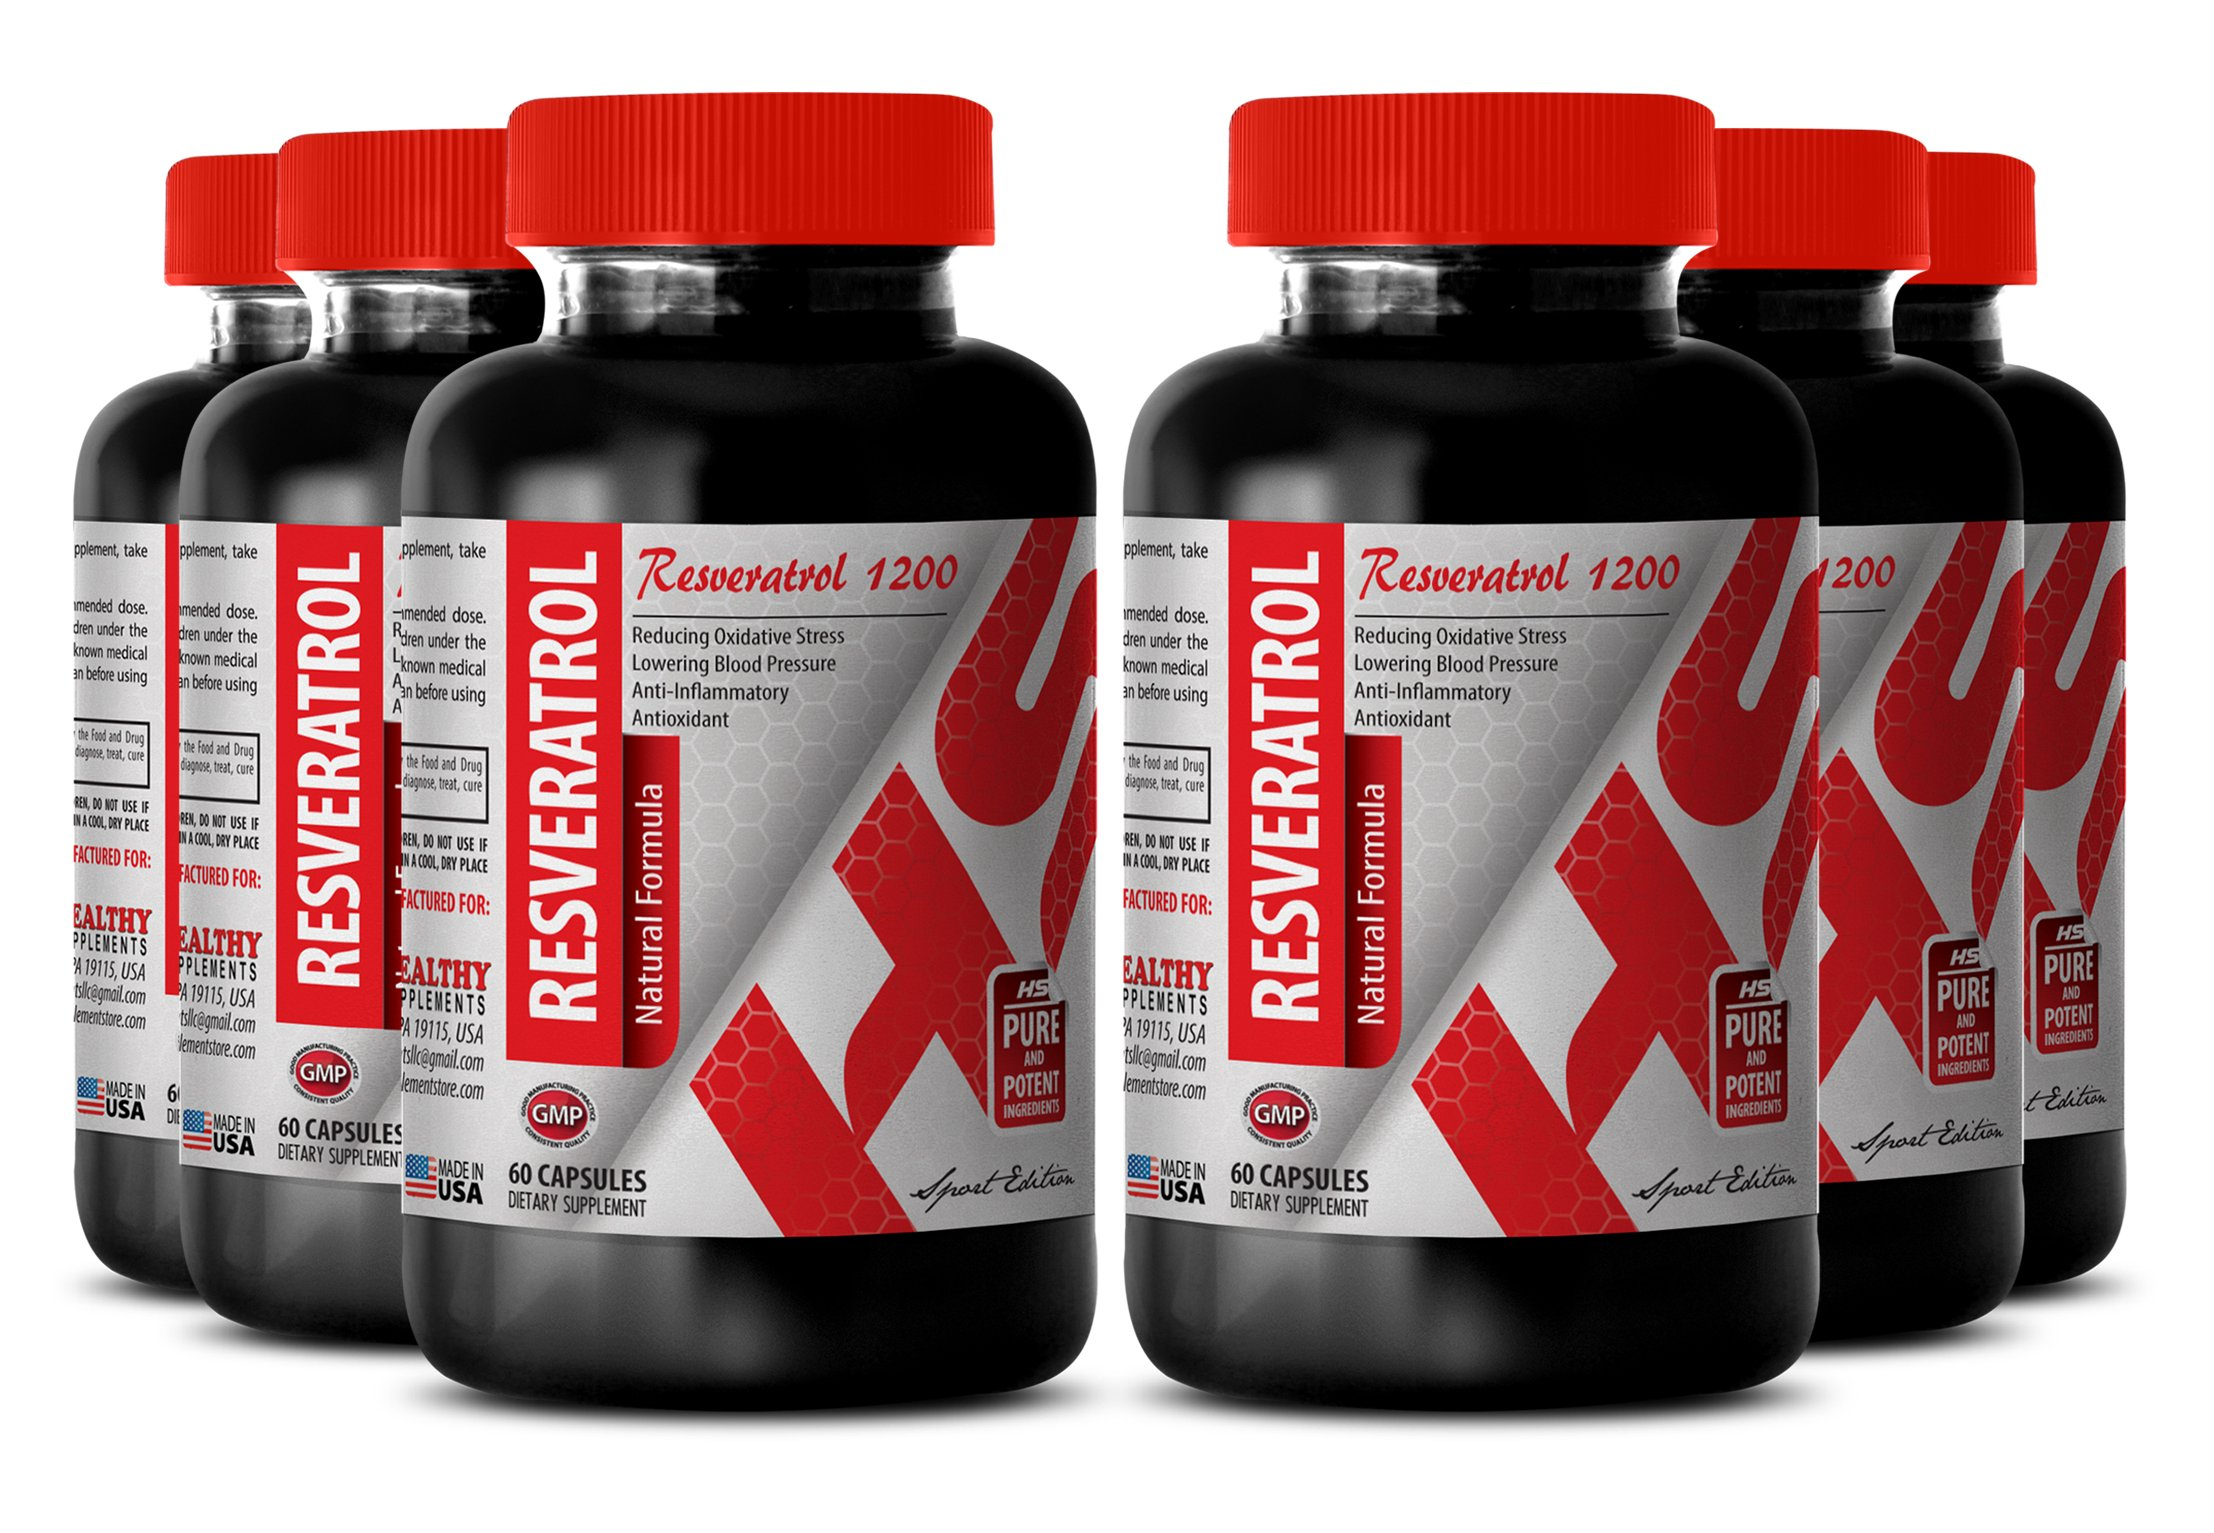 Resveratrol red wine - RESVERATROL RED WINE EXTRACT 1200 MG - help in weight loss (6 Bottles)